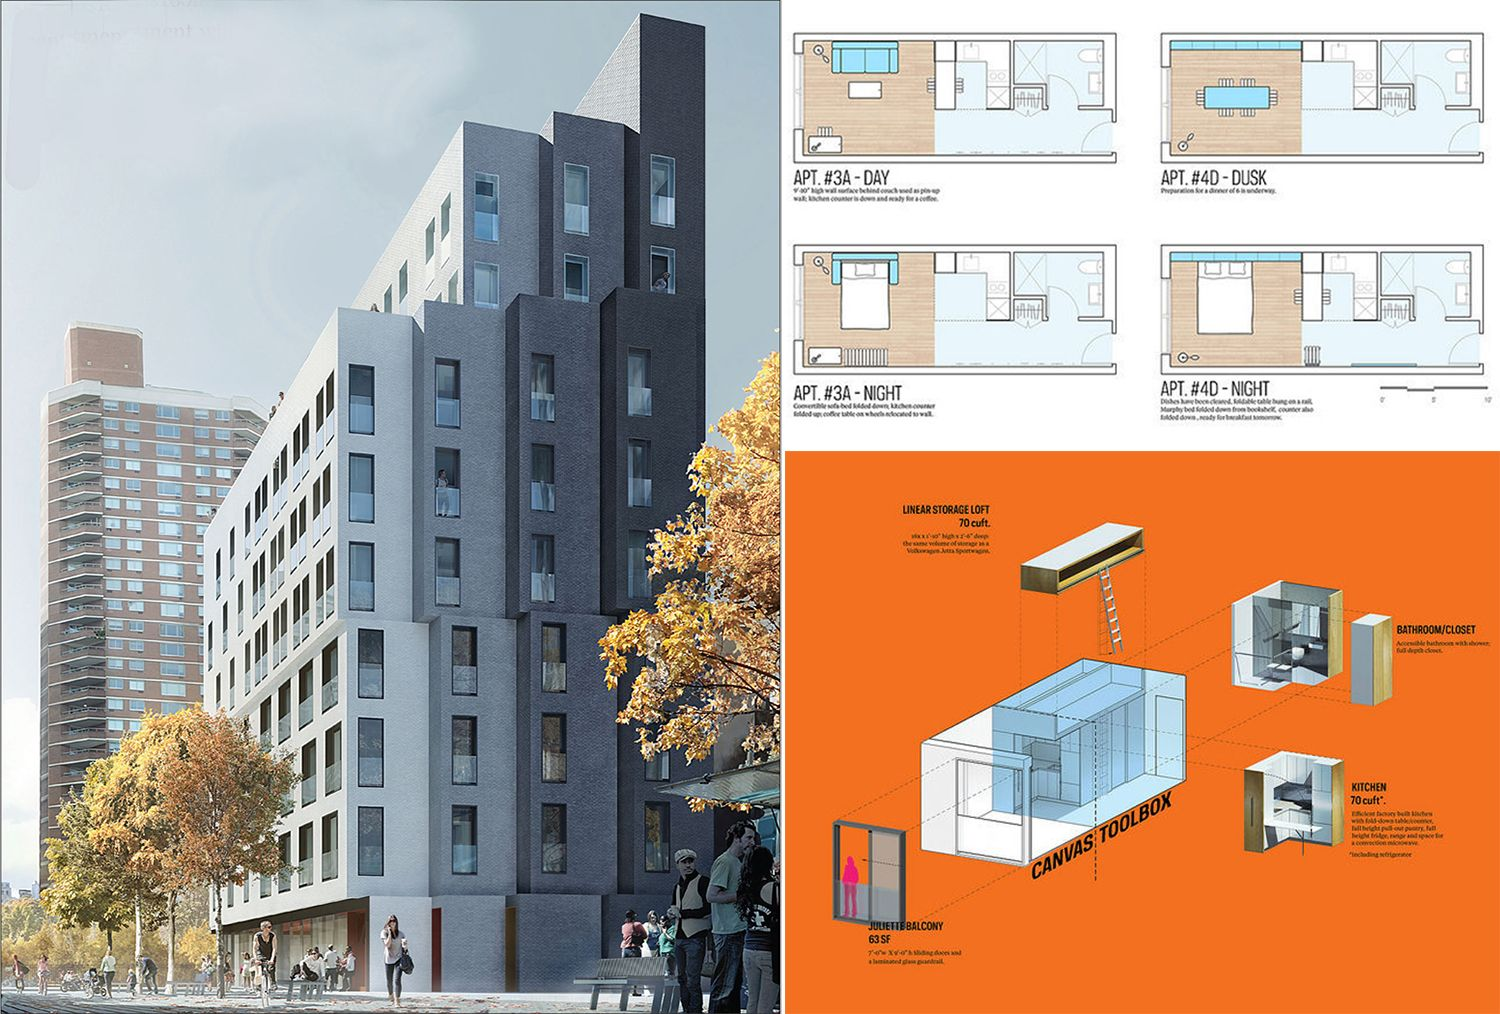 Nyc S First Micro Apartment Complex Now Accepting Applications Units As Low As 950 Month 6sqft Micro Apartment Apartment Projects Apartment Architecture